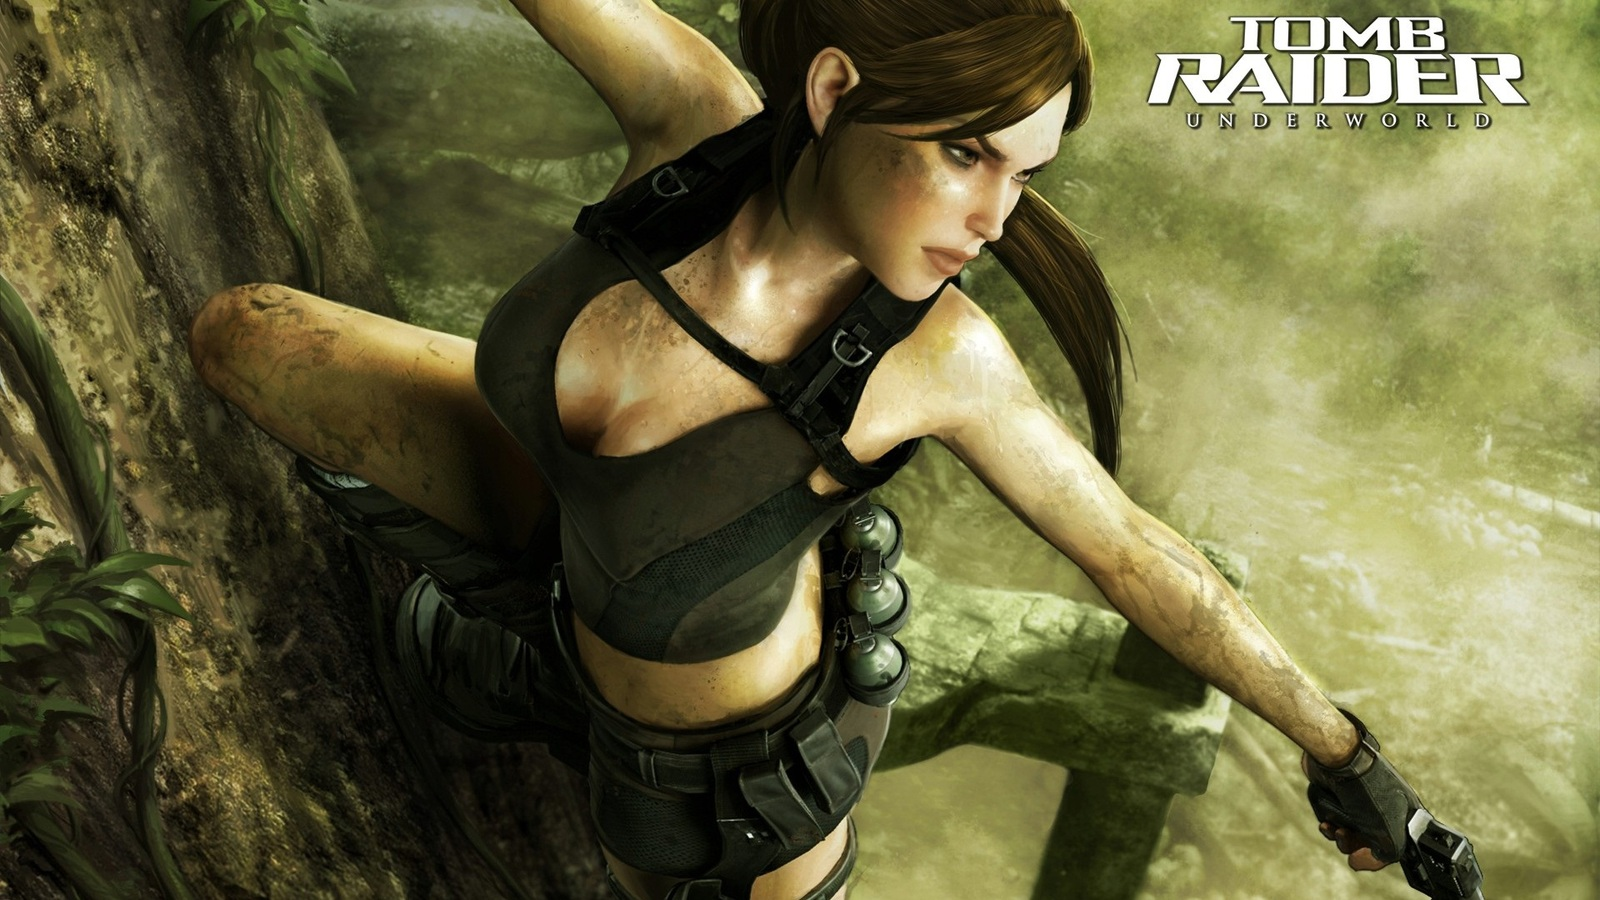 Tomb raider underworld henti erotic pics